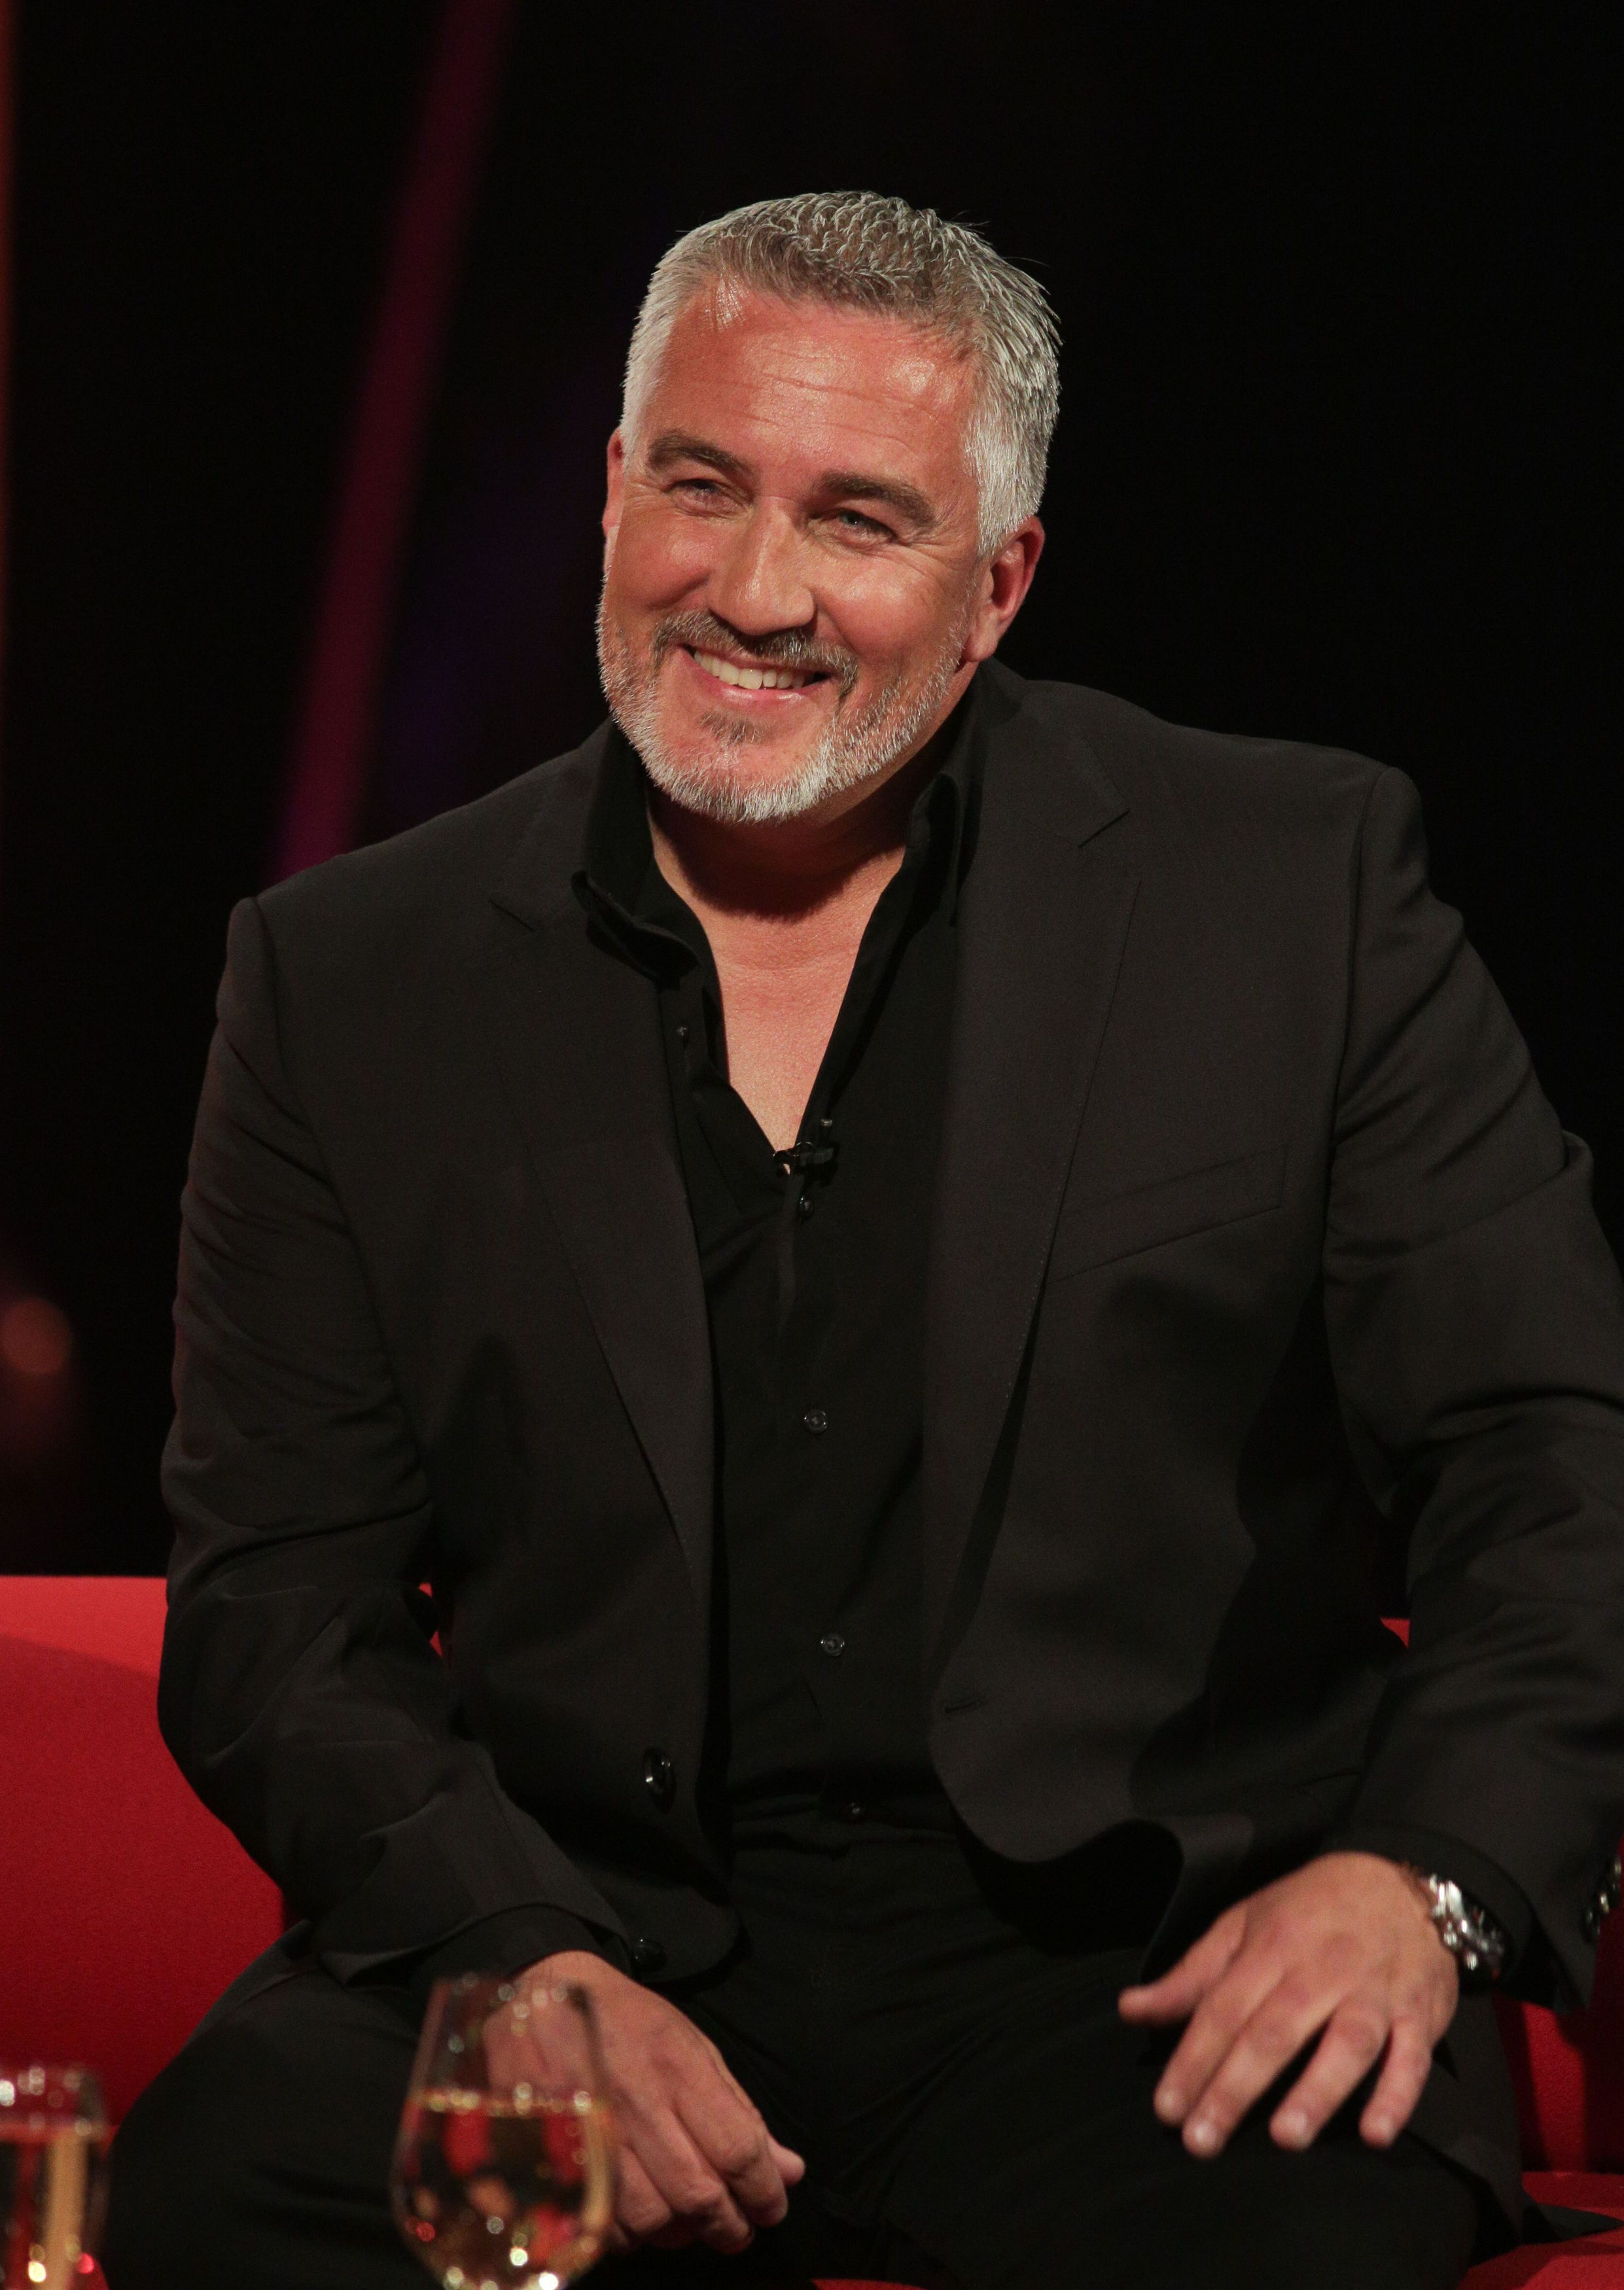 <strong>Paul Hollywood</strong>